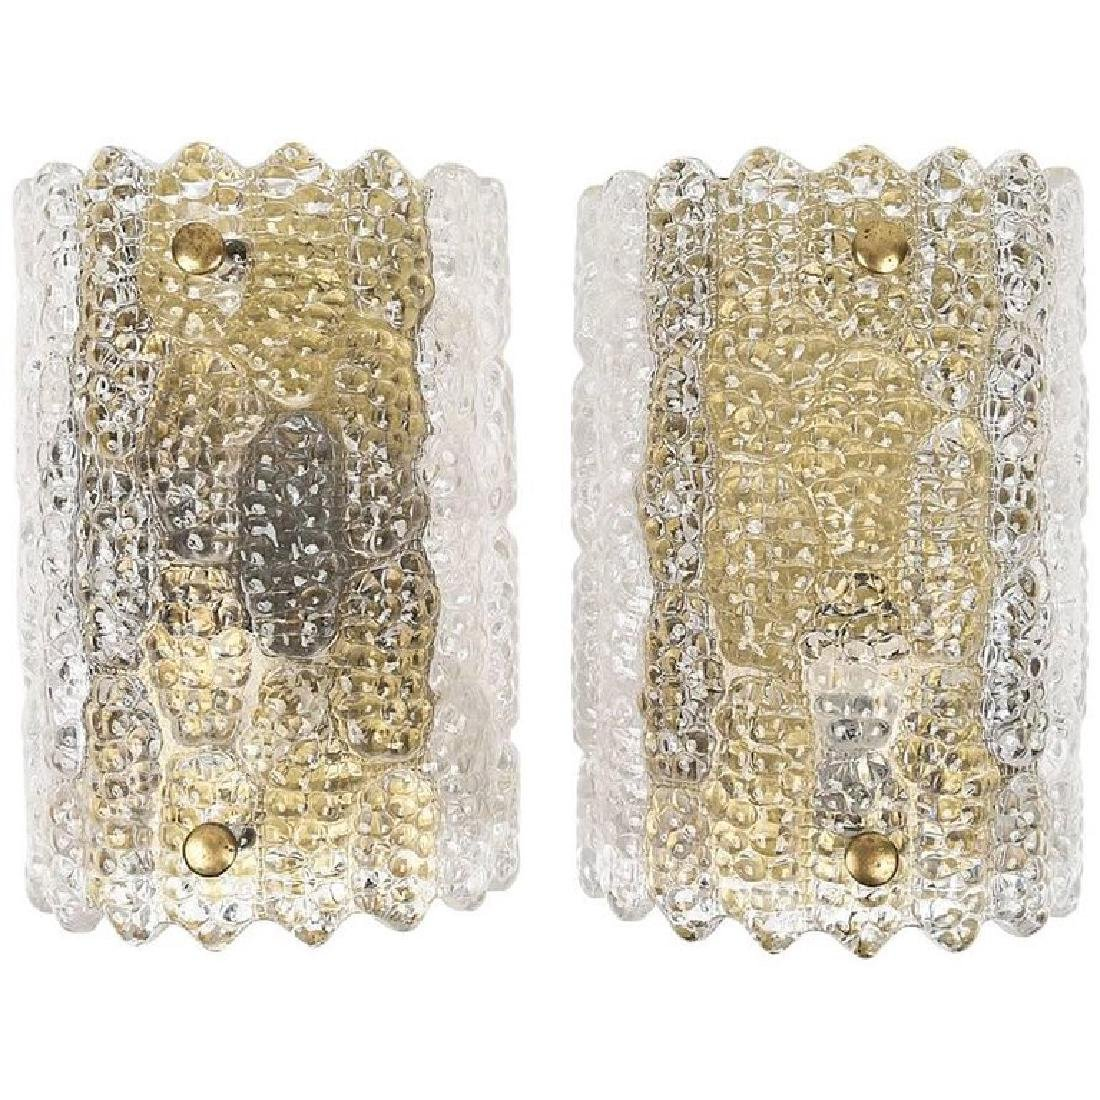 PAIR OF CARL FAGERLUND FOR ORREFORS SCONCES - 2